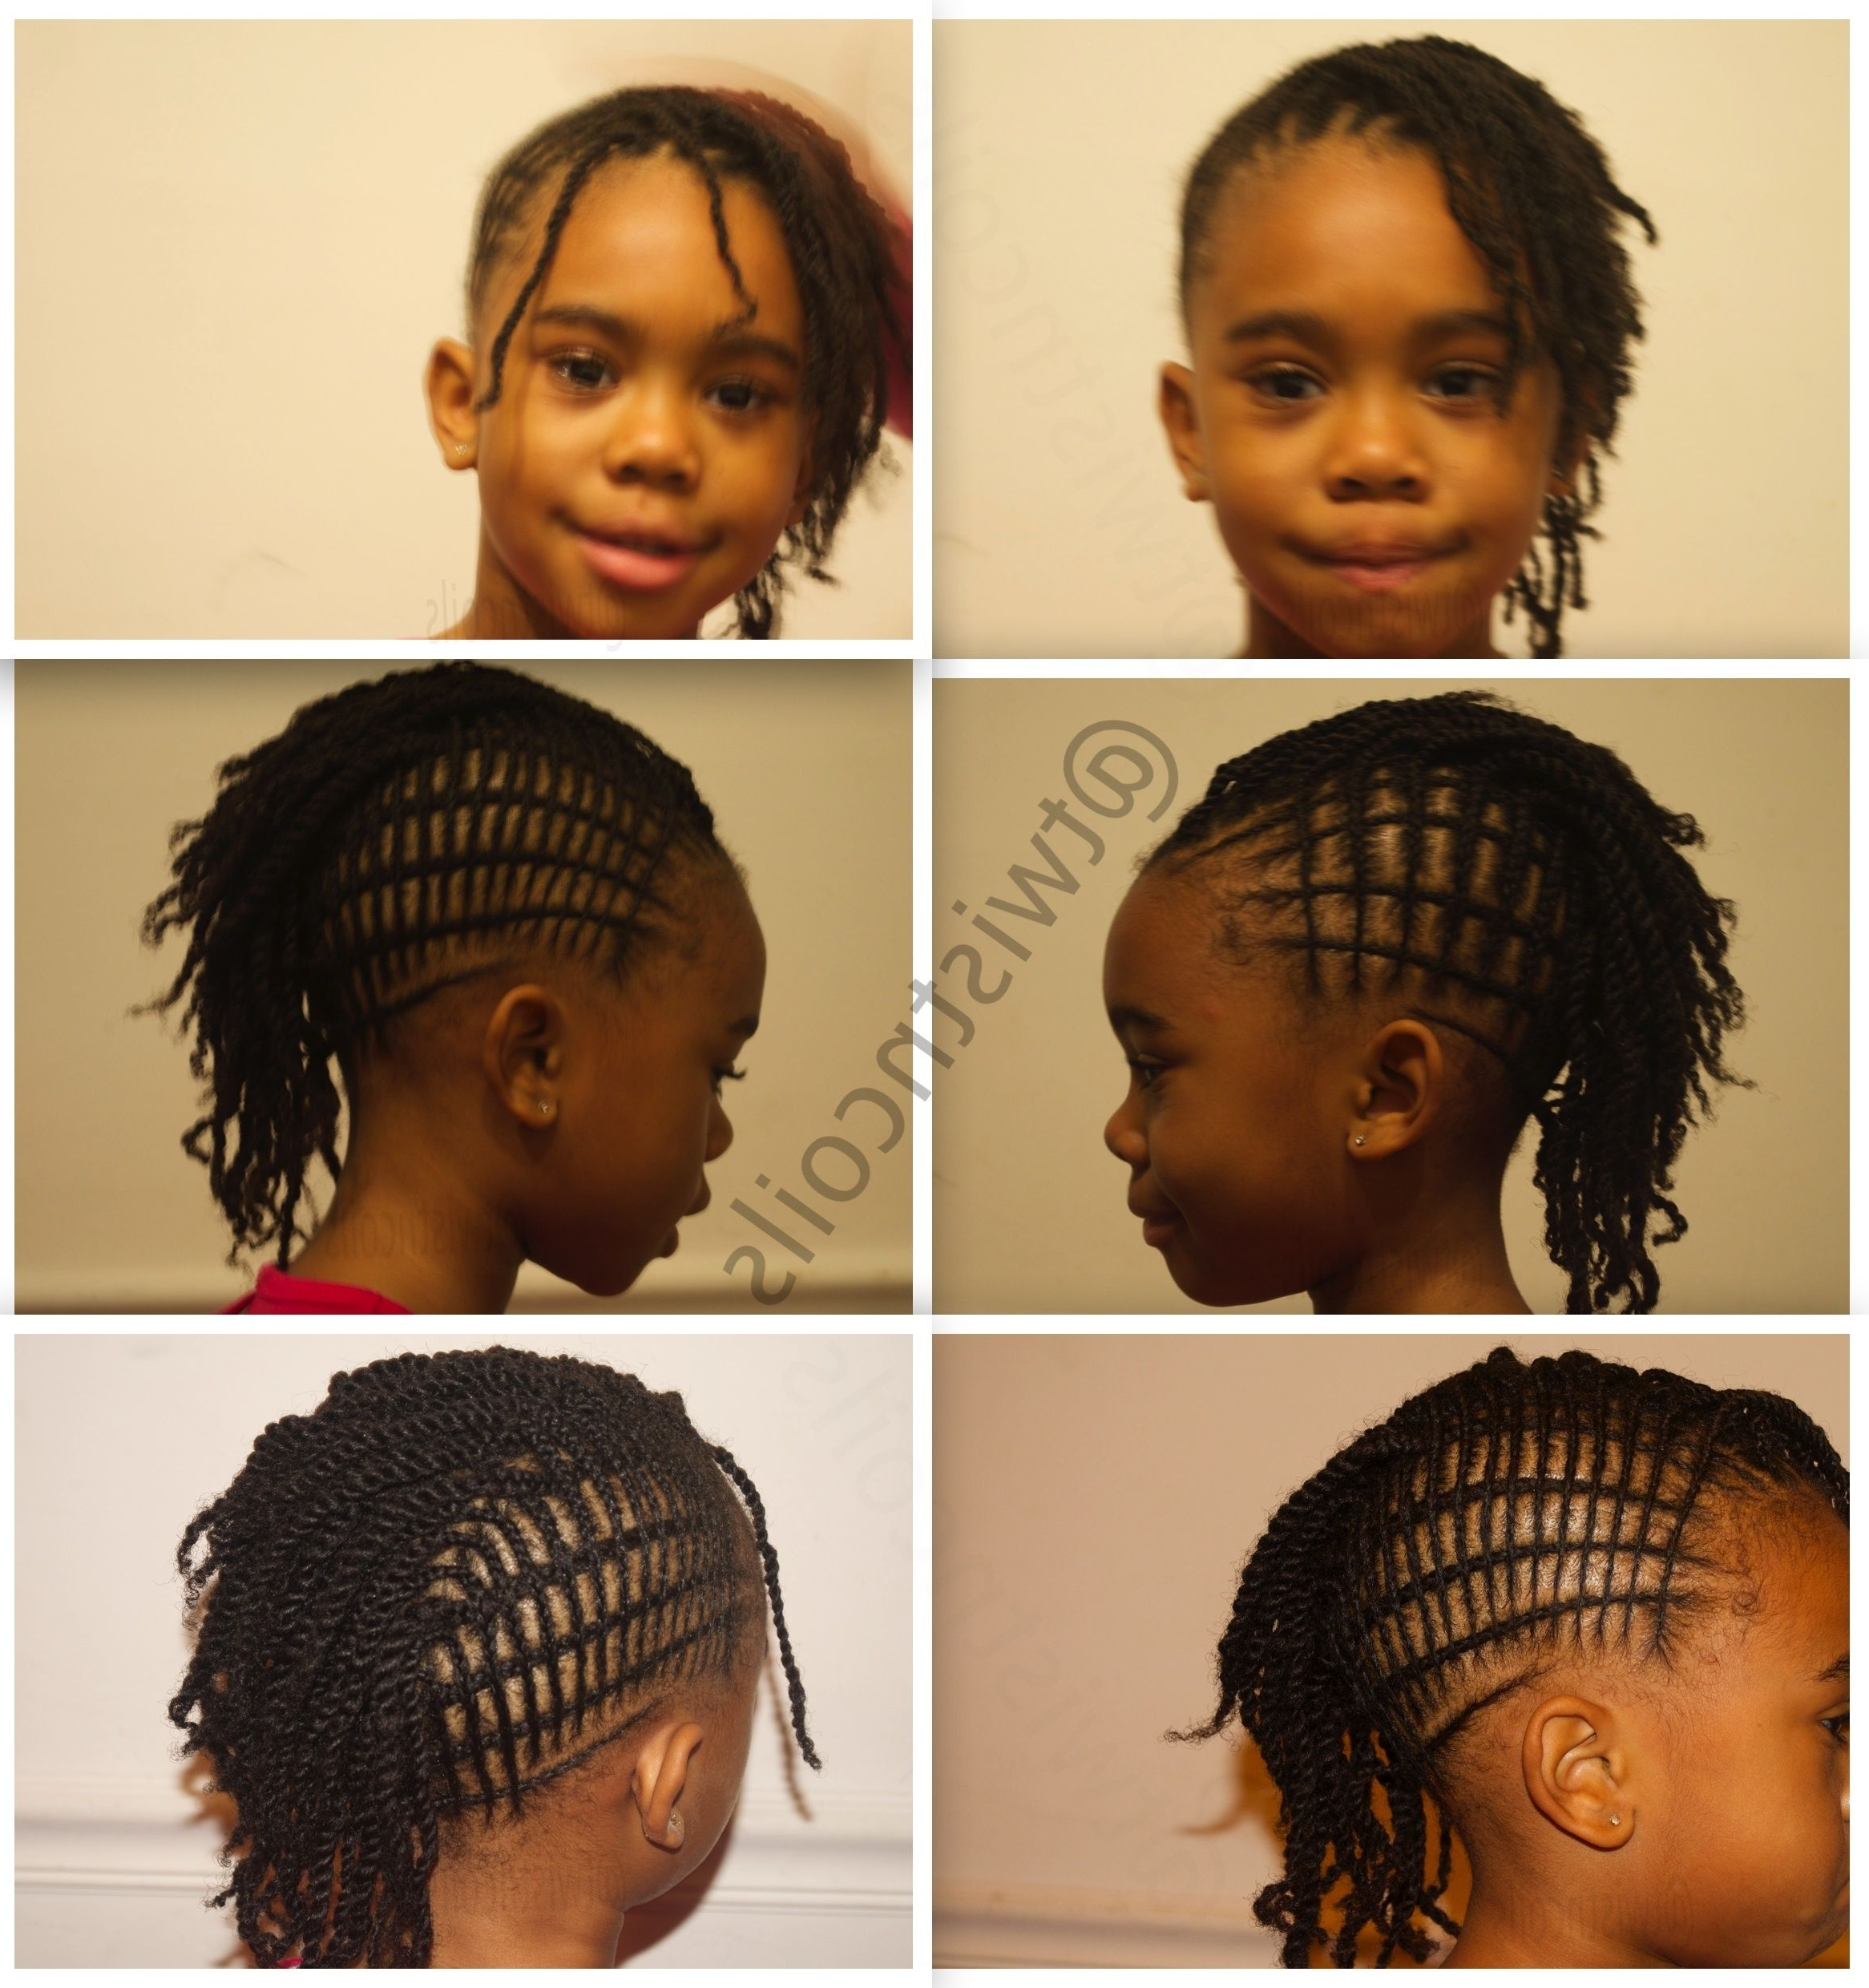 Best And Newest Mohawk With Criss Crossed Braids Intended For Interlaced (Criss Cross) Mohawk Design ~Tnc~ #kidsnaturalhair (View 1 of 15)